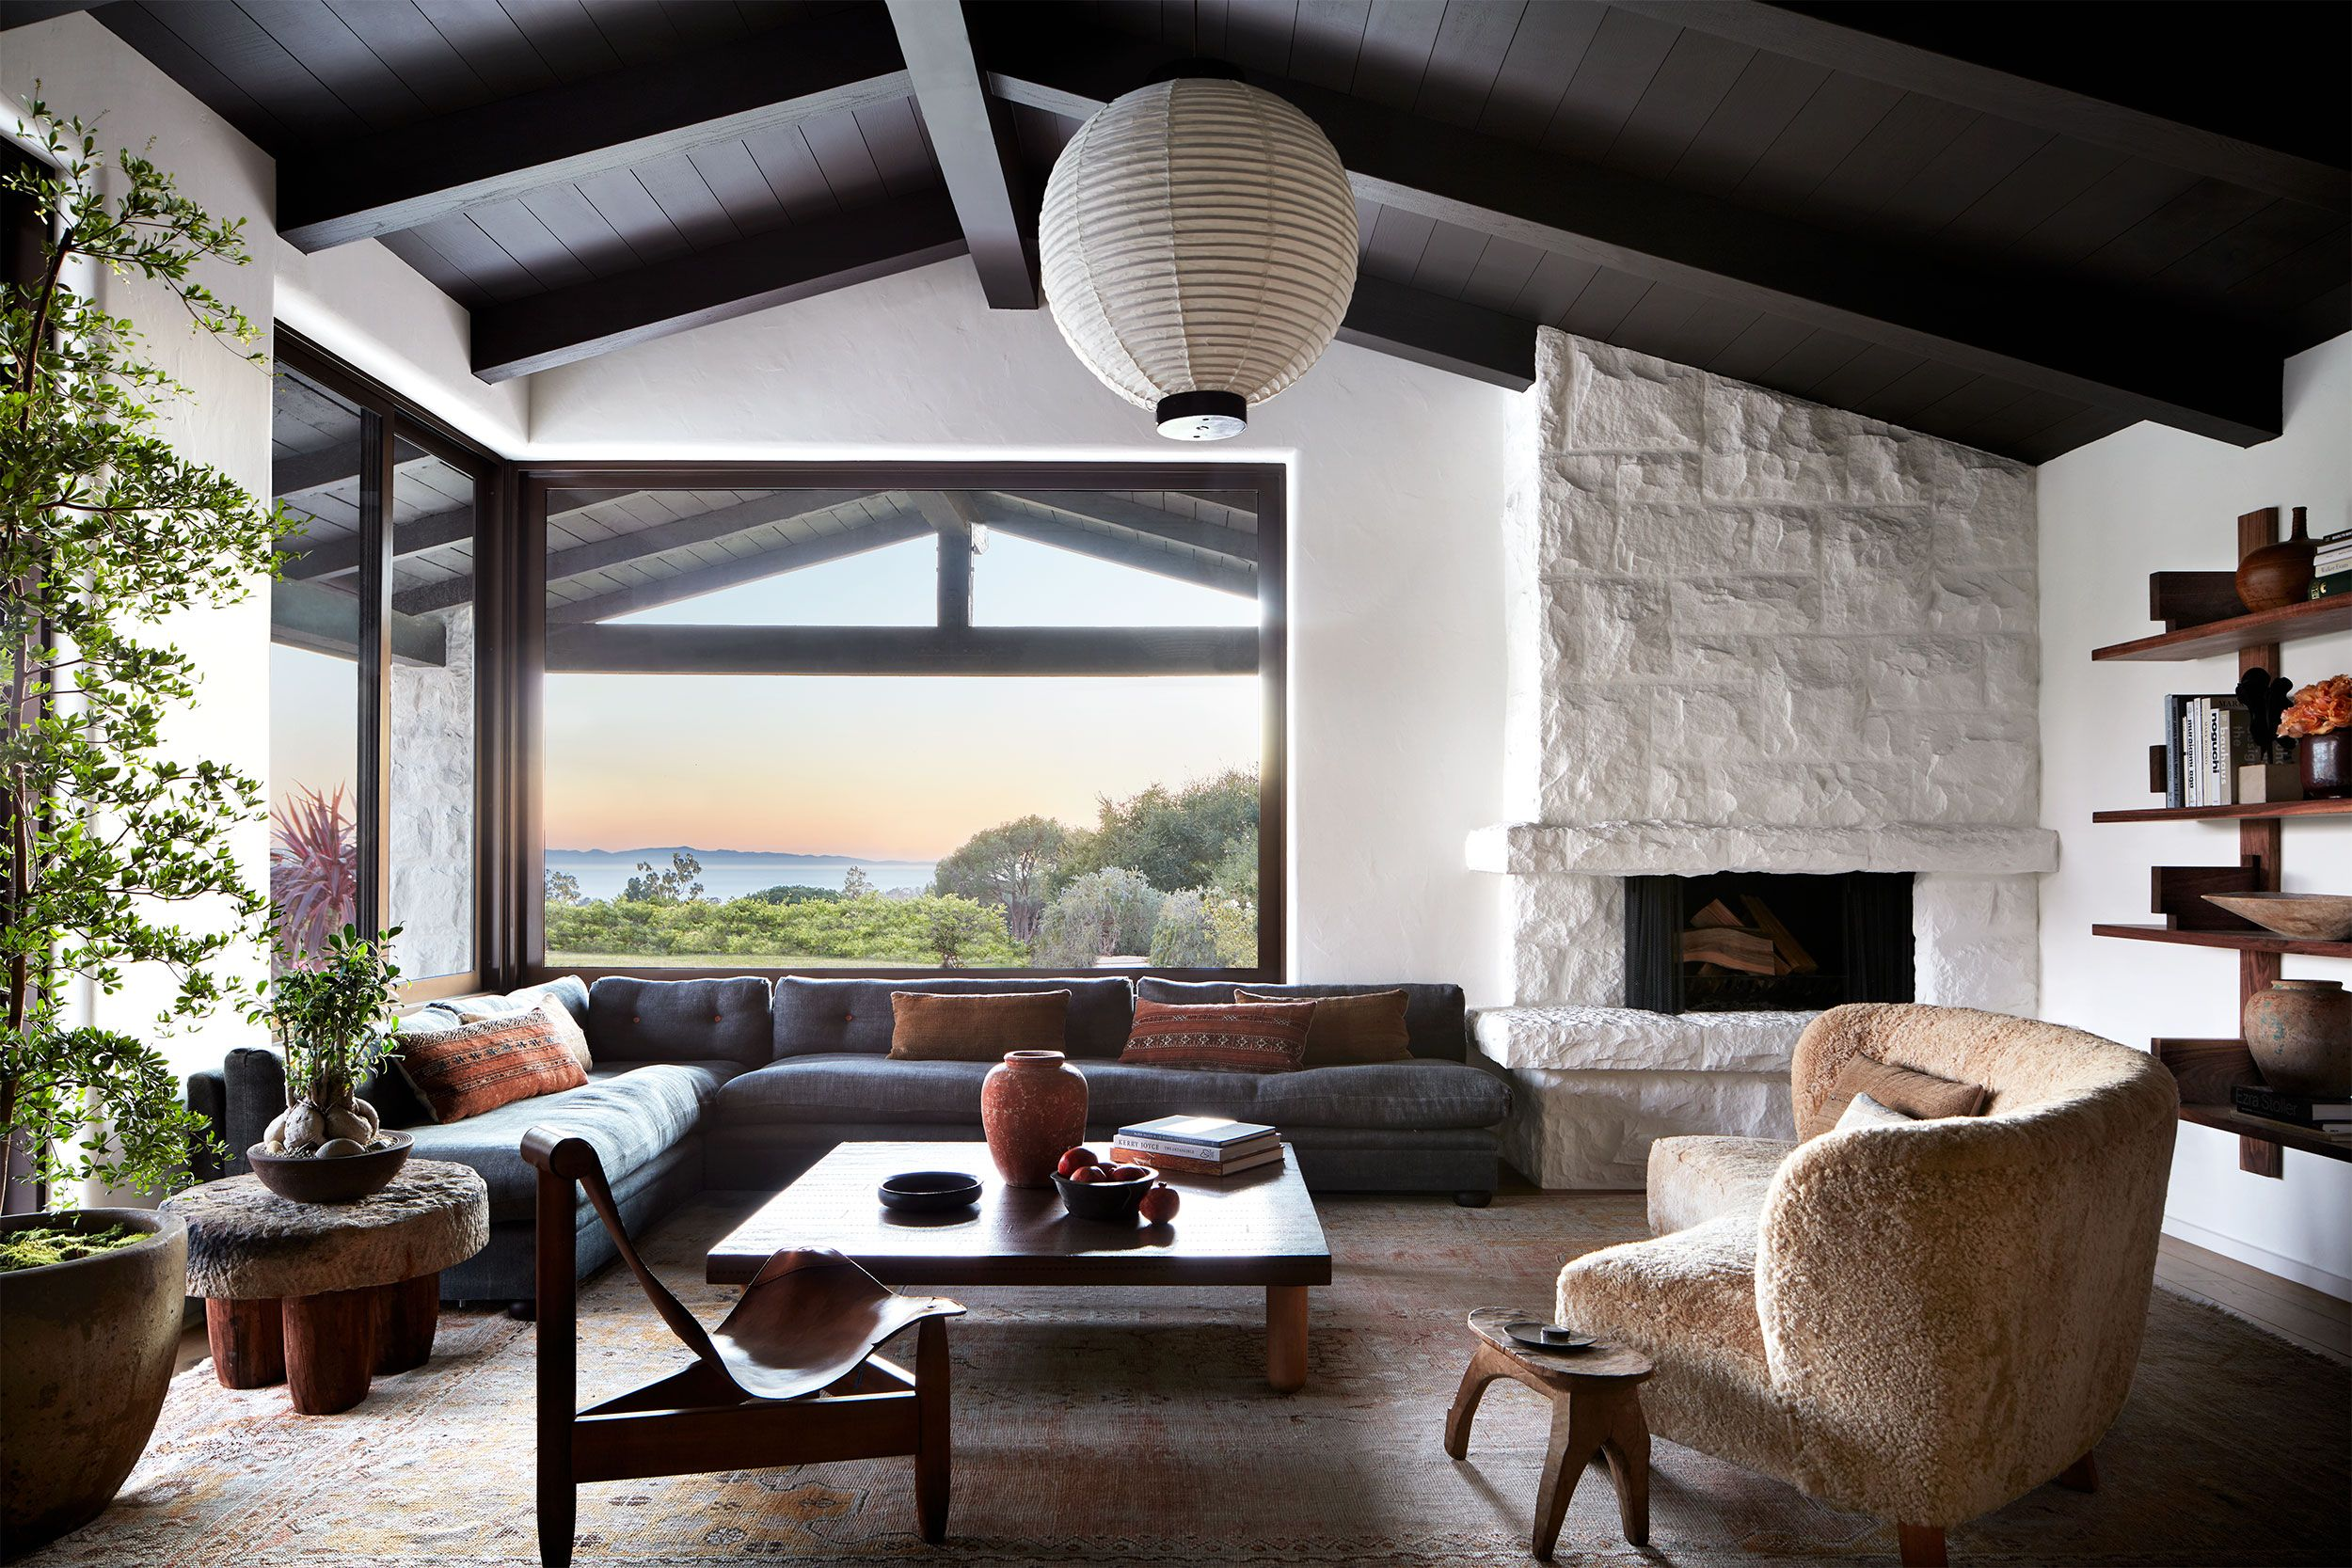 This Southern California Sanctuary Will Envelop You Like a Warm Embrace